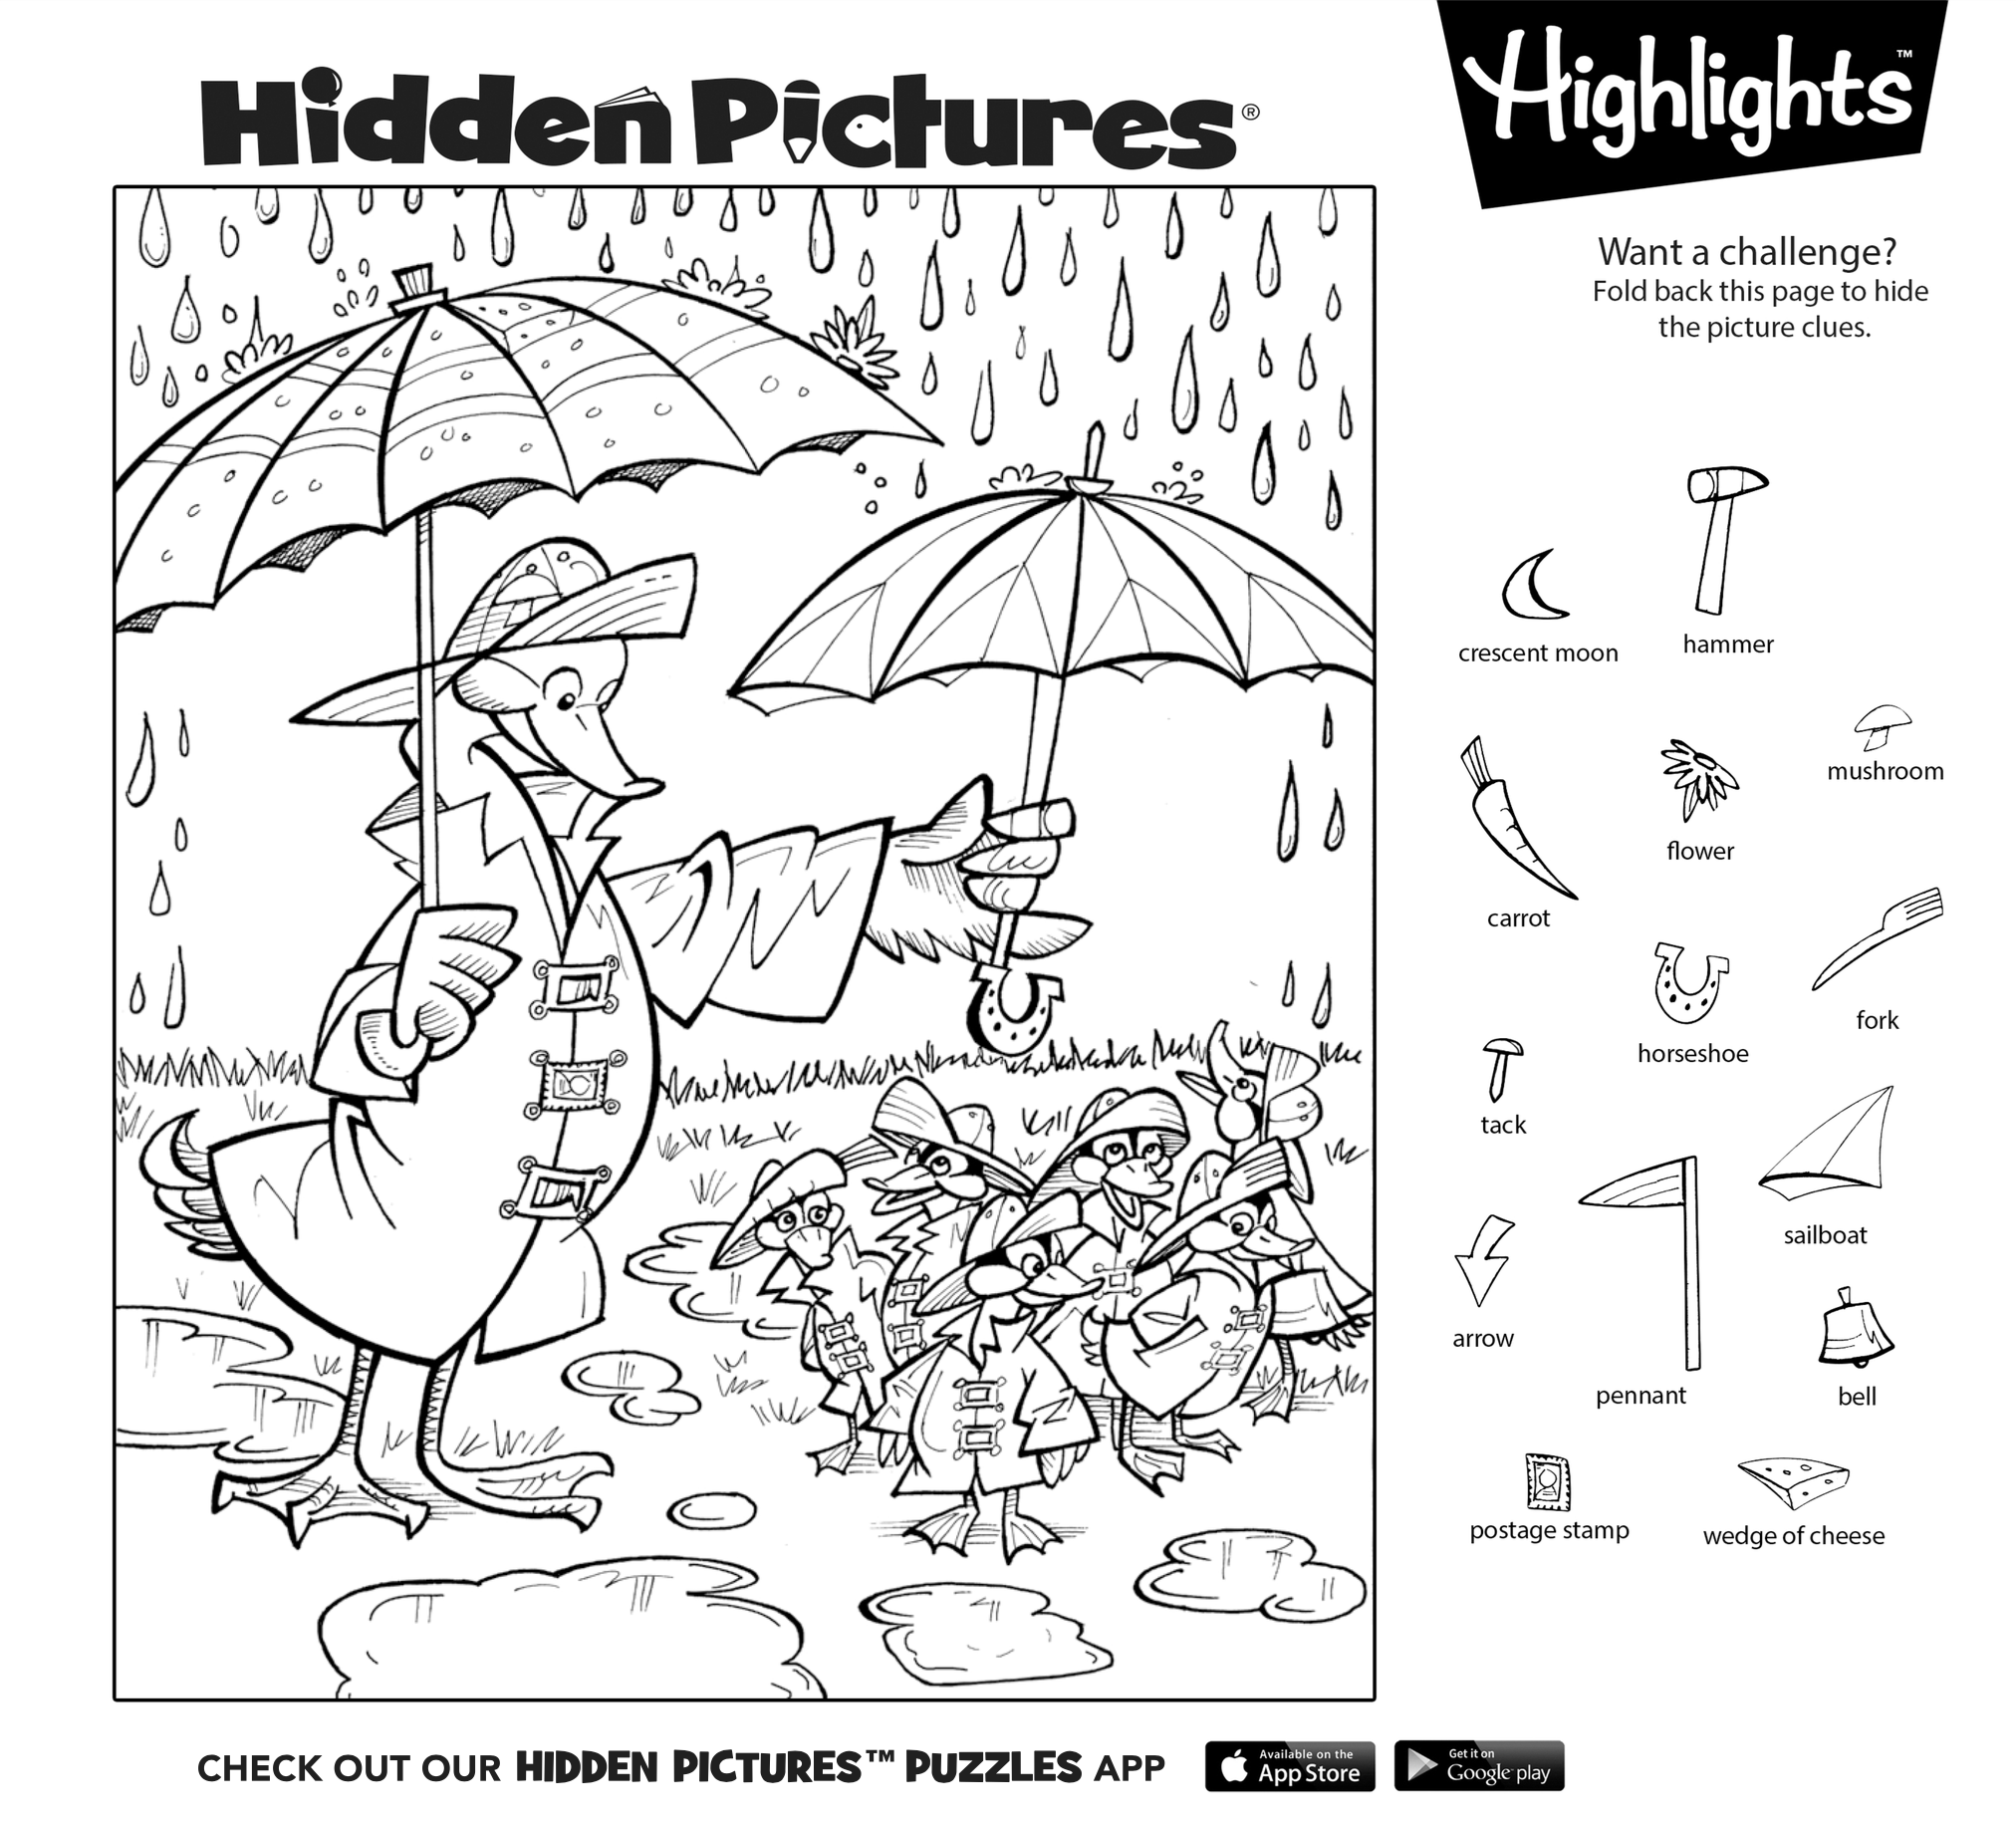 Free Printable Highlights Hidden Picture Puzzles